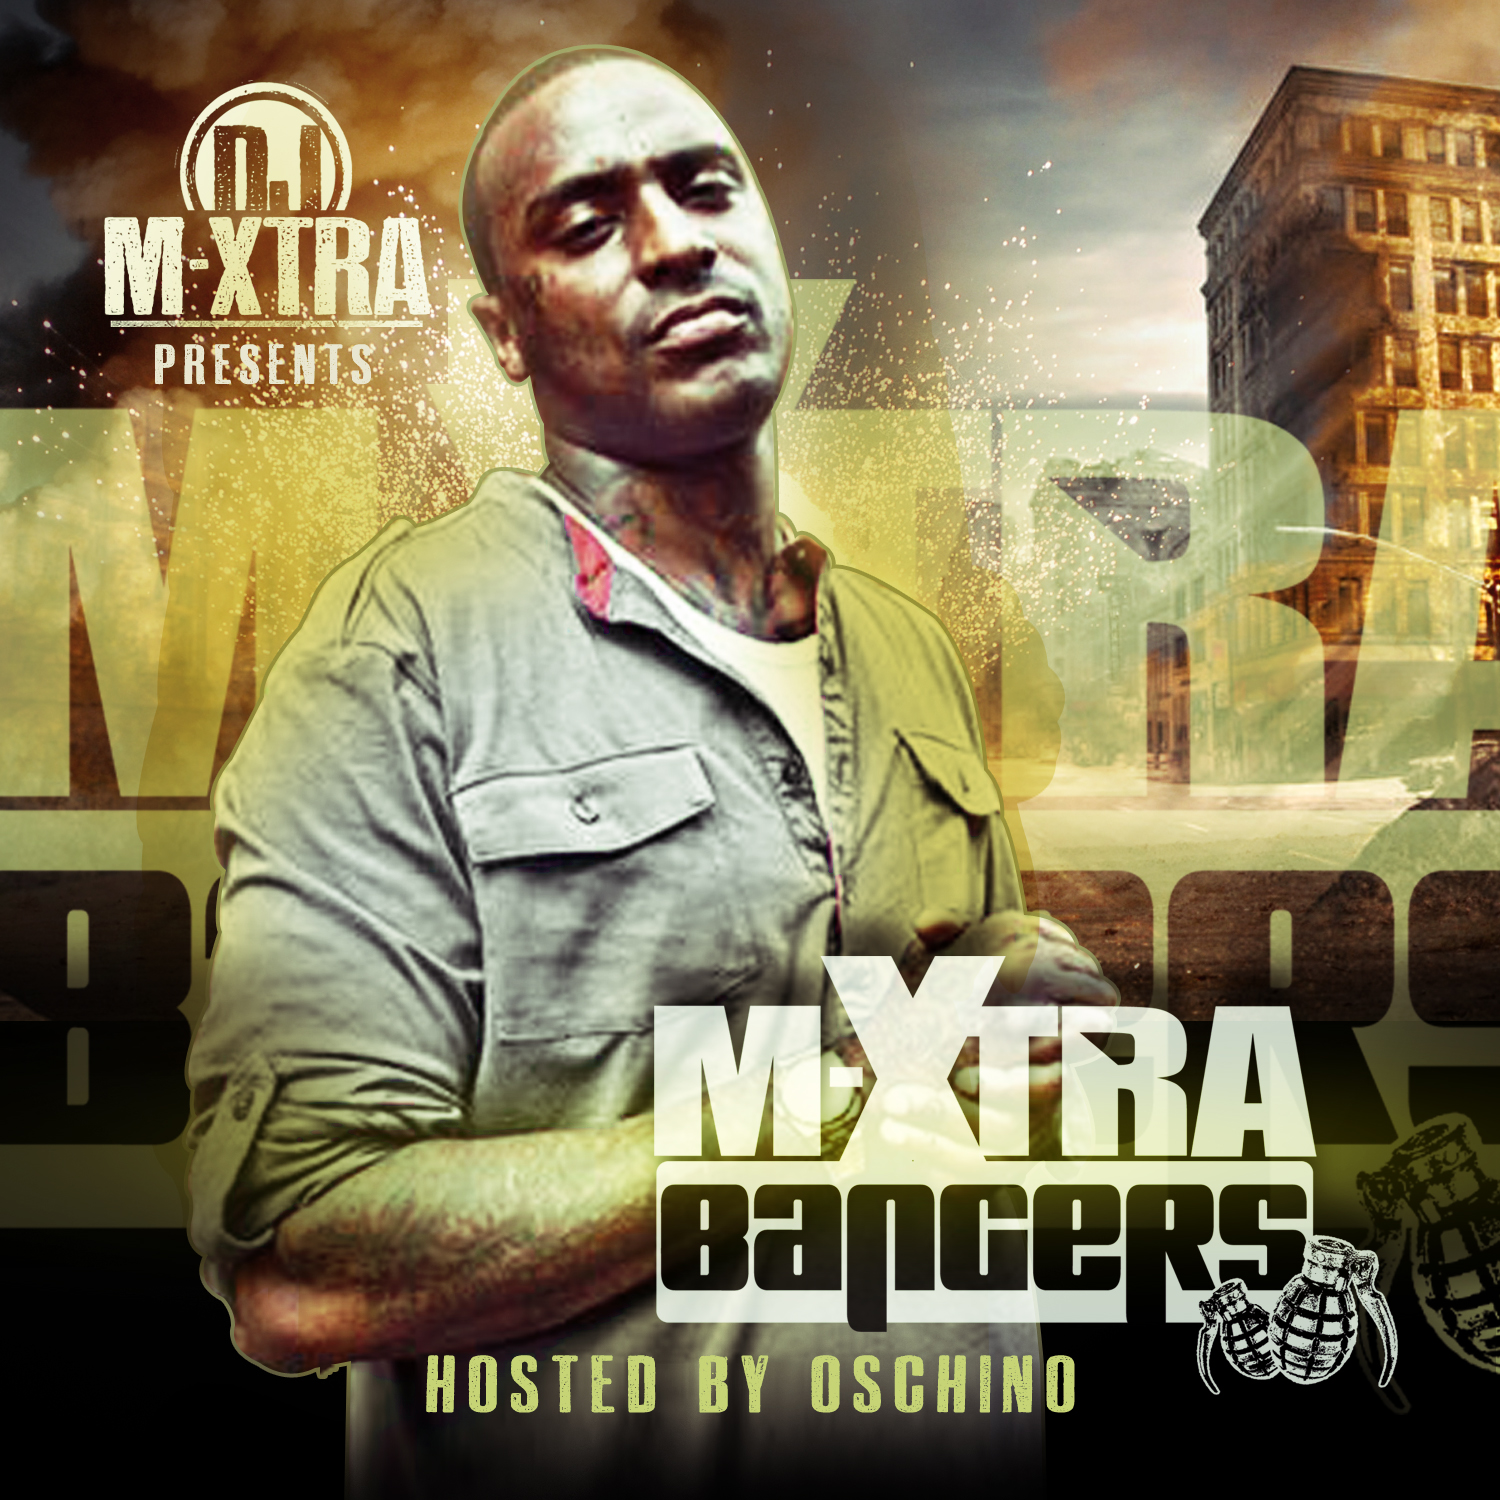 xtra bang @DJMxtra   Bangers Vol 1 Hosted By @Oschino Vasquez (Mixtape)